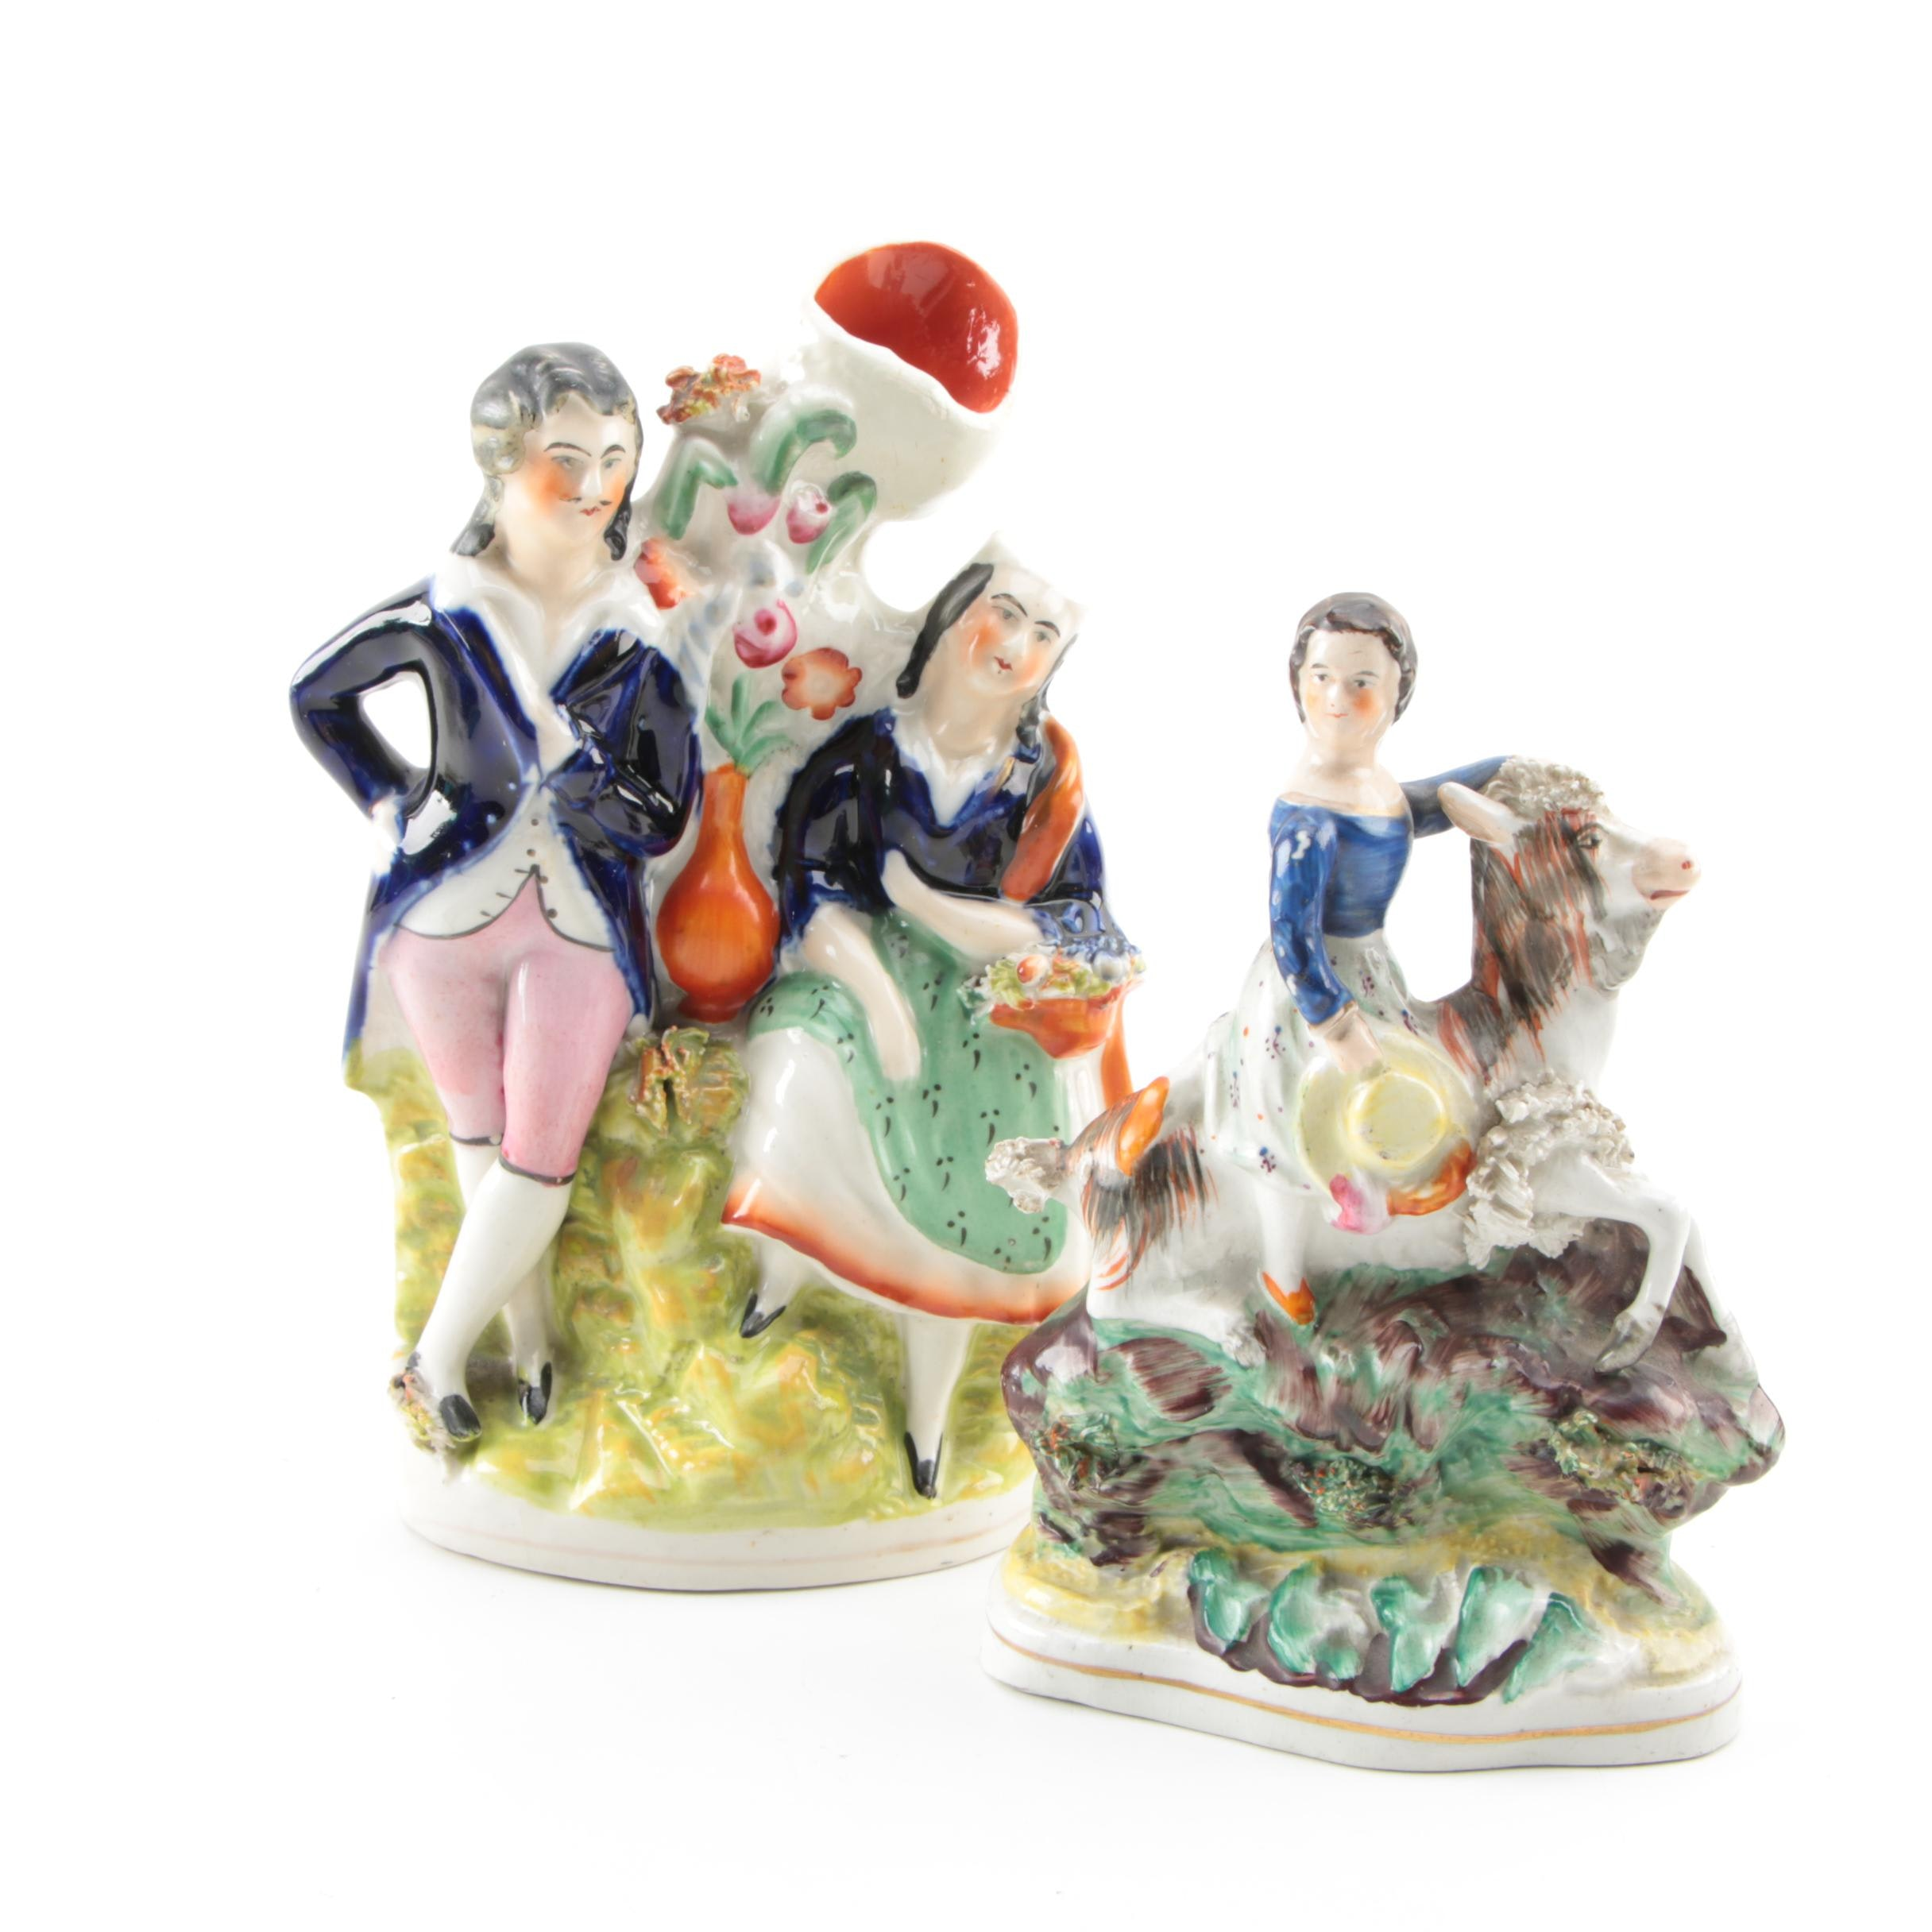 """Victorian Staffordshire Figure """"Princess Royal Riding a Goat"""" and a Spill Vase"""